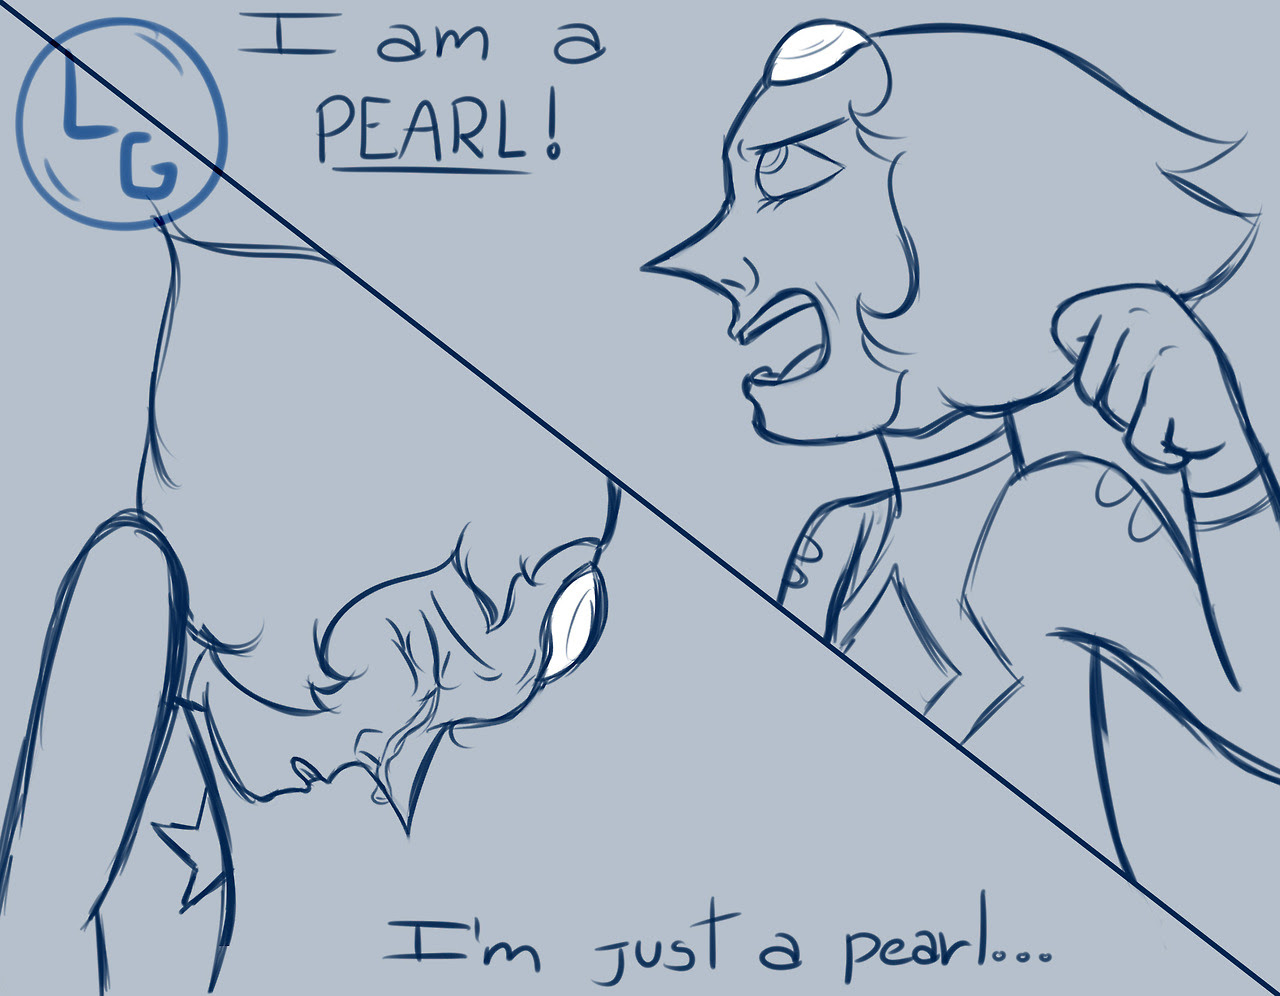 I never saw that character development of Pearl in a drawing and I find it awesome, so I did it myself just a sketch for now